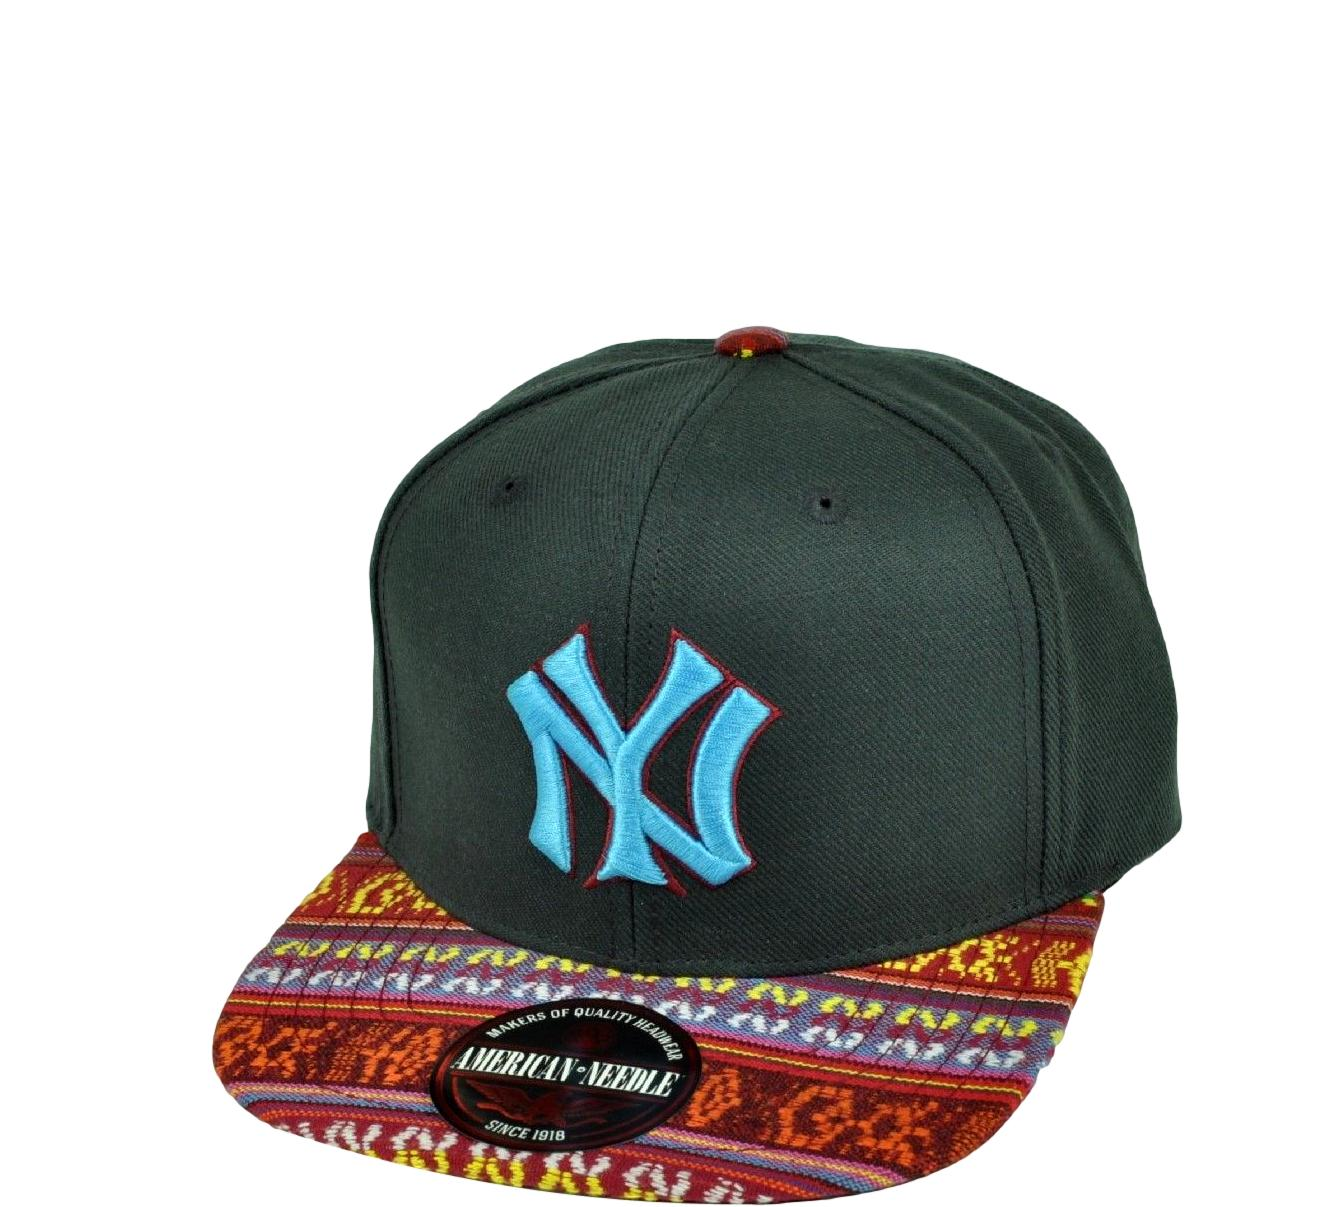 Yankees Retro Strapback Hat